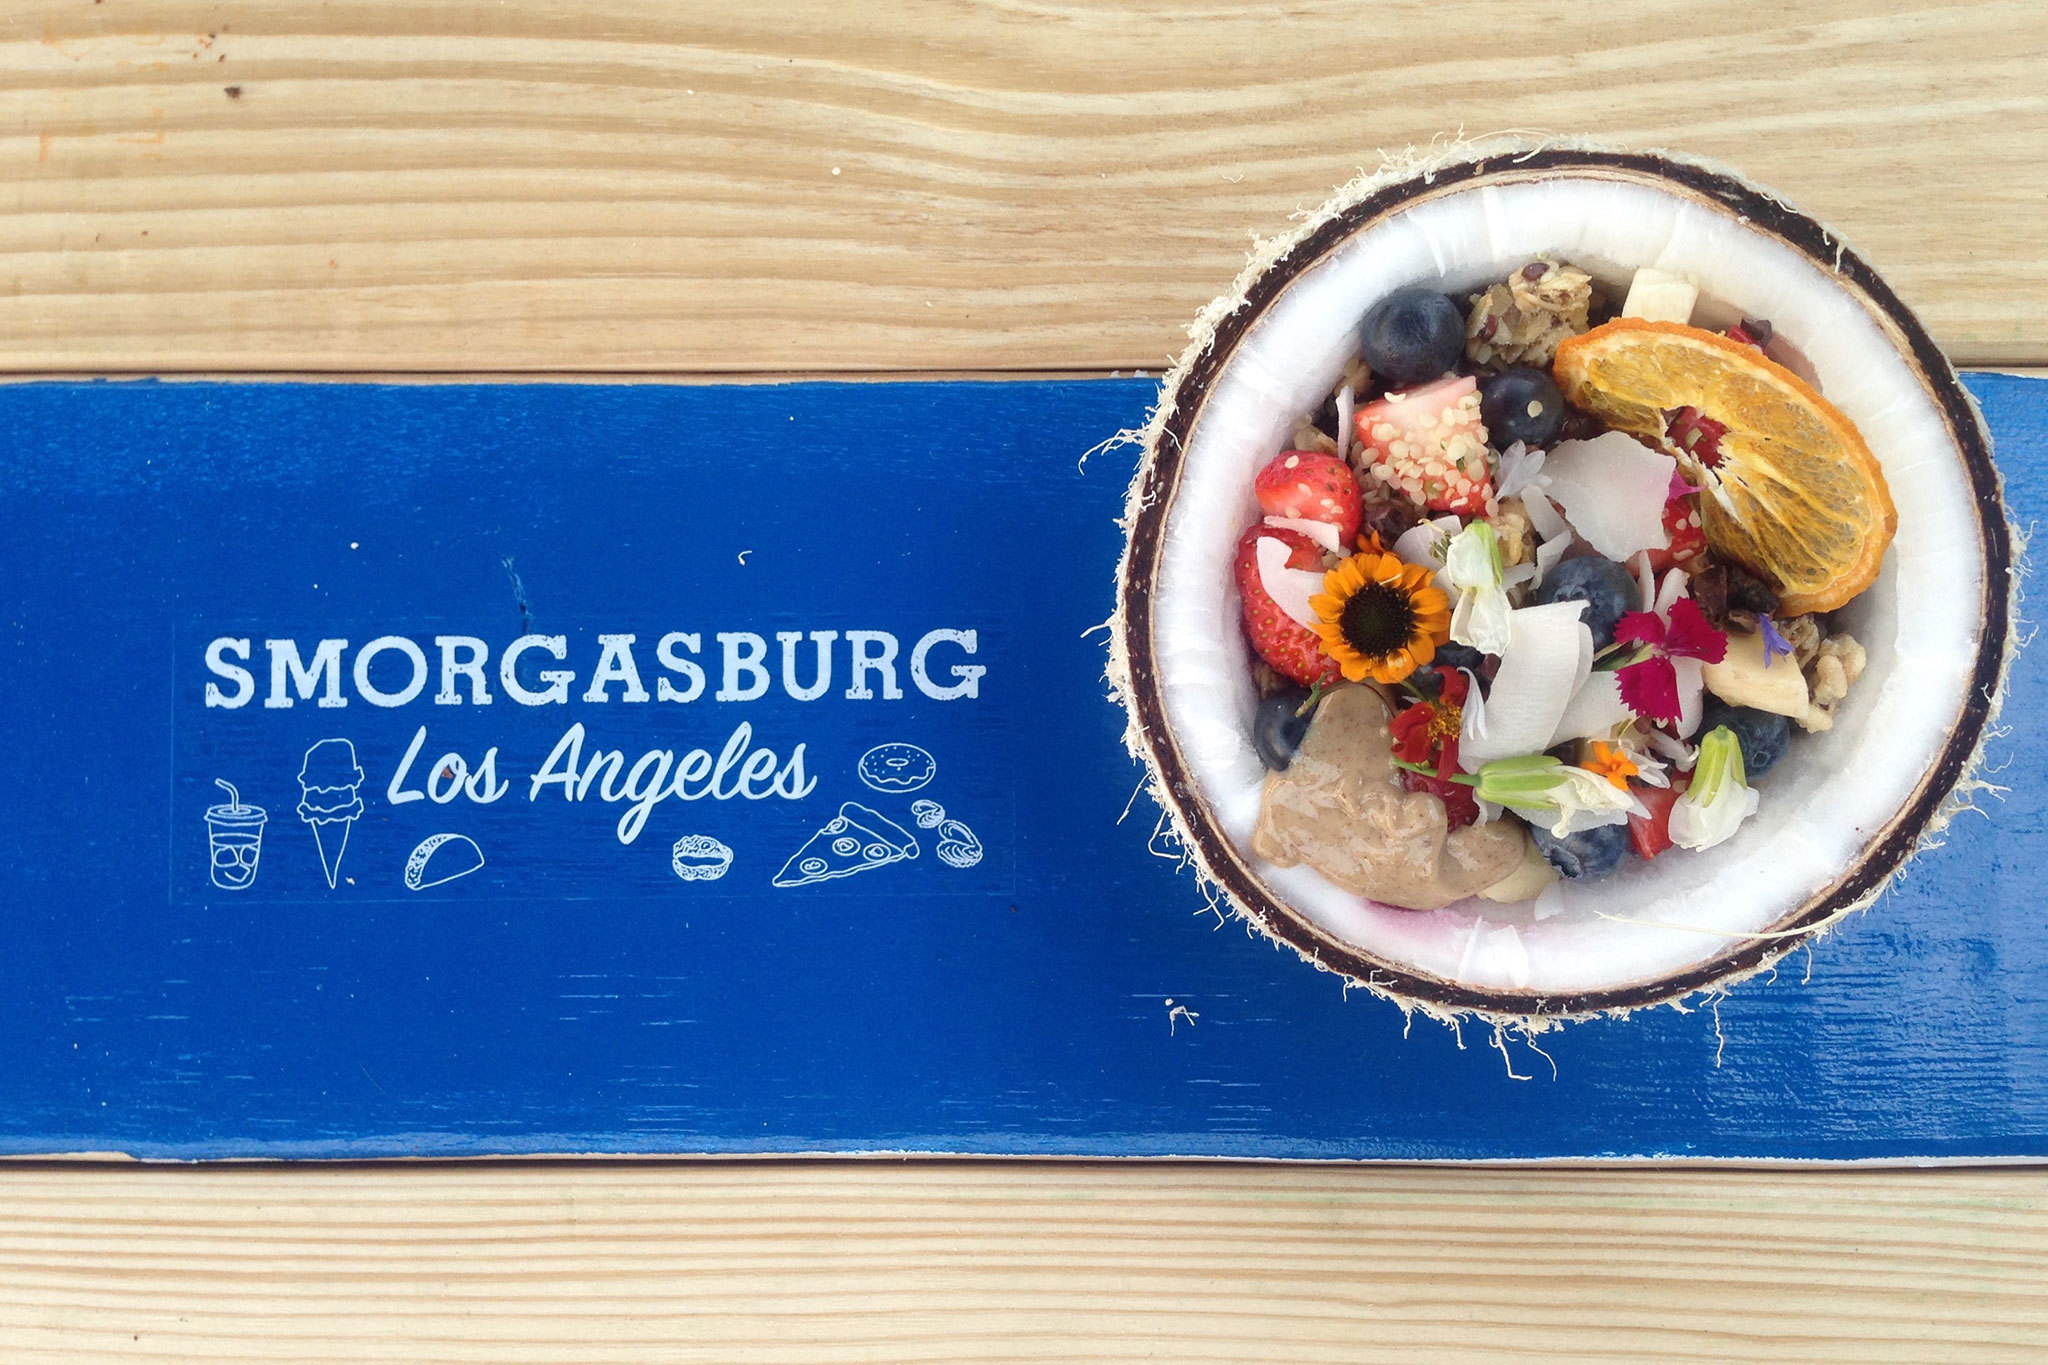 For one day only, Smorgasburg is popping up on the westside